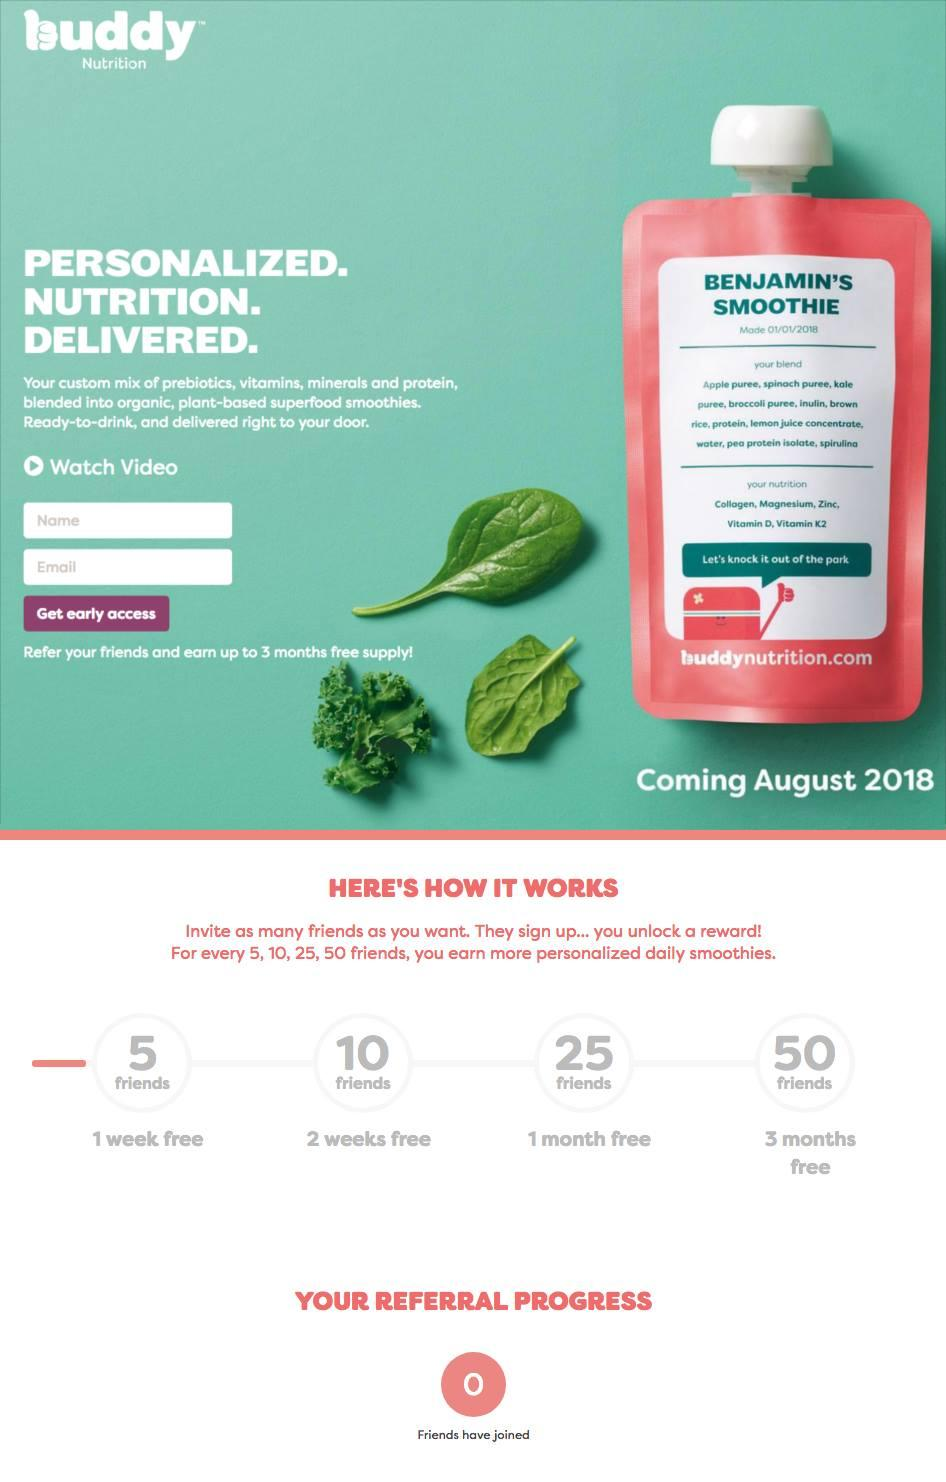 FREE Buddy Nutrition Personalized Smoothies